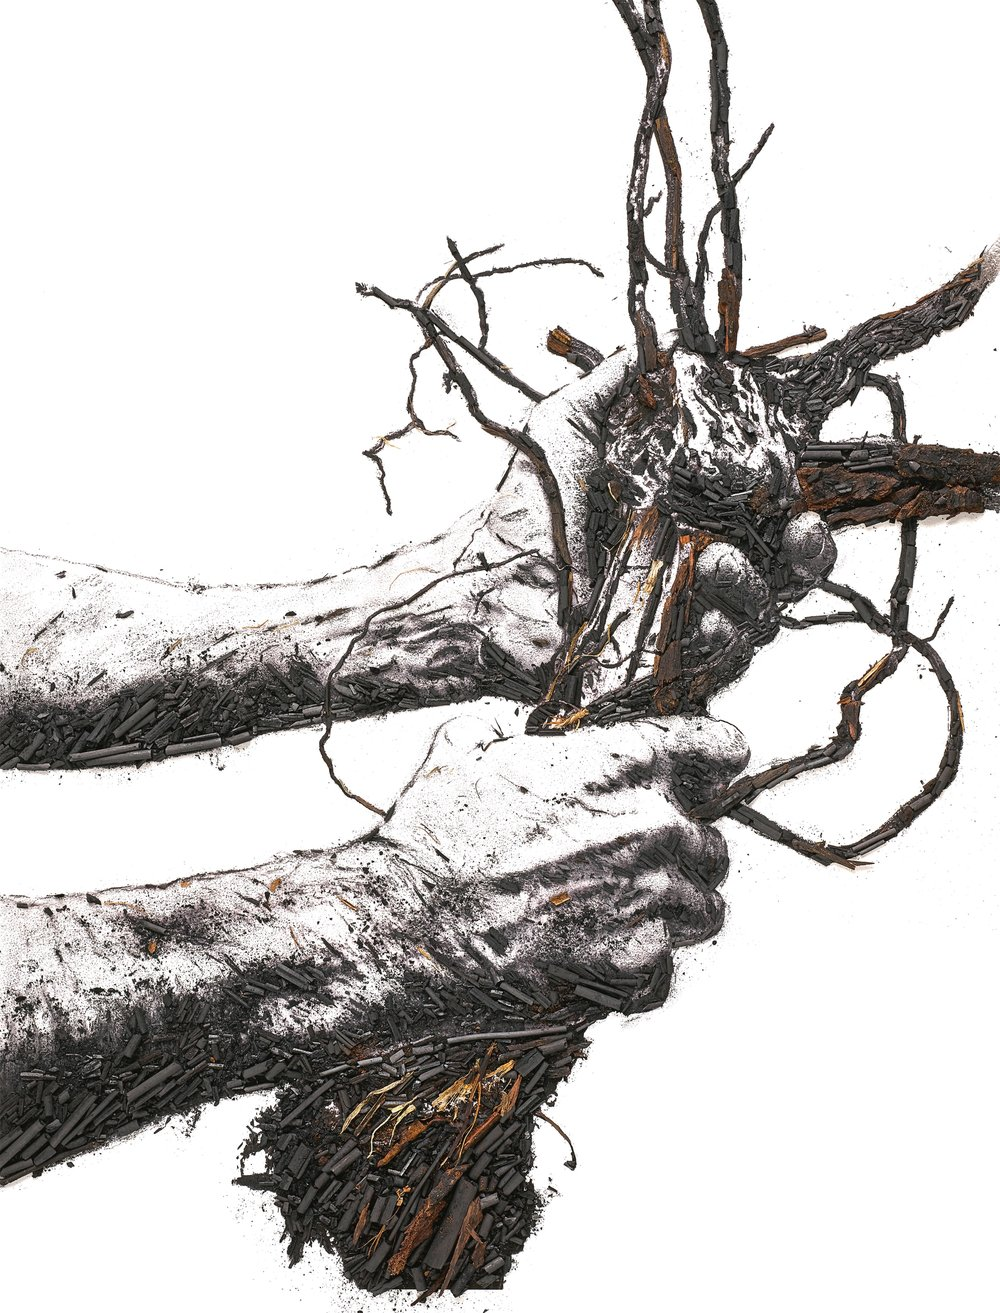 Flow Hands , one of the works created by Vik Muniz as part of his Ruinart collaboration